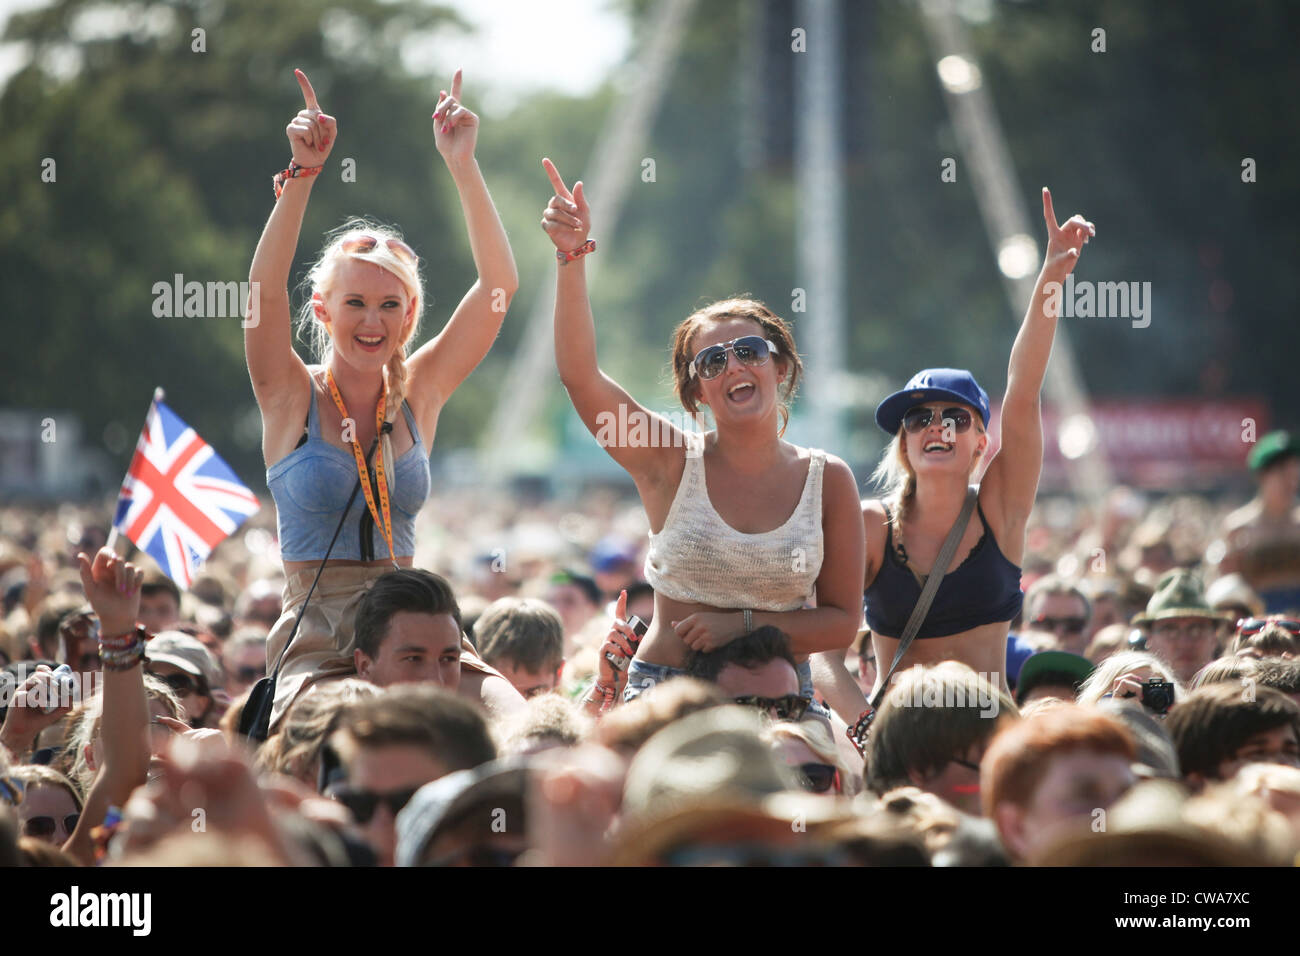 Girls in the crowd enjoying the live music at the V Festival in Hylands Park, Chelmsford, Essex - Stock Image